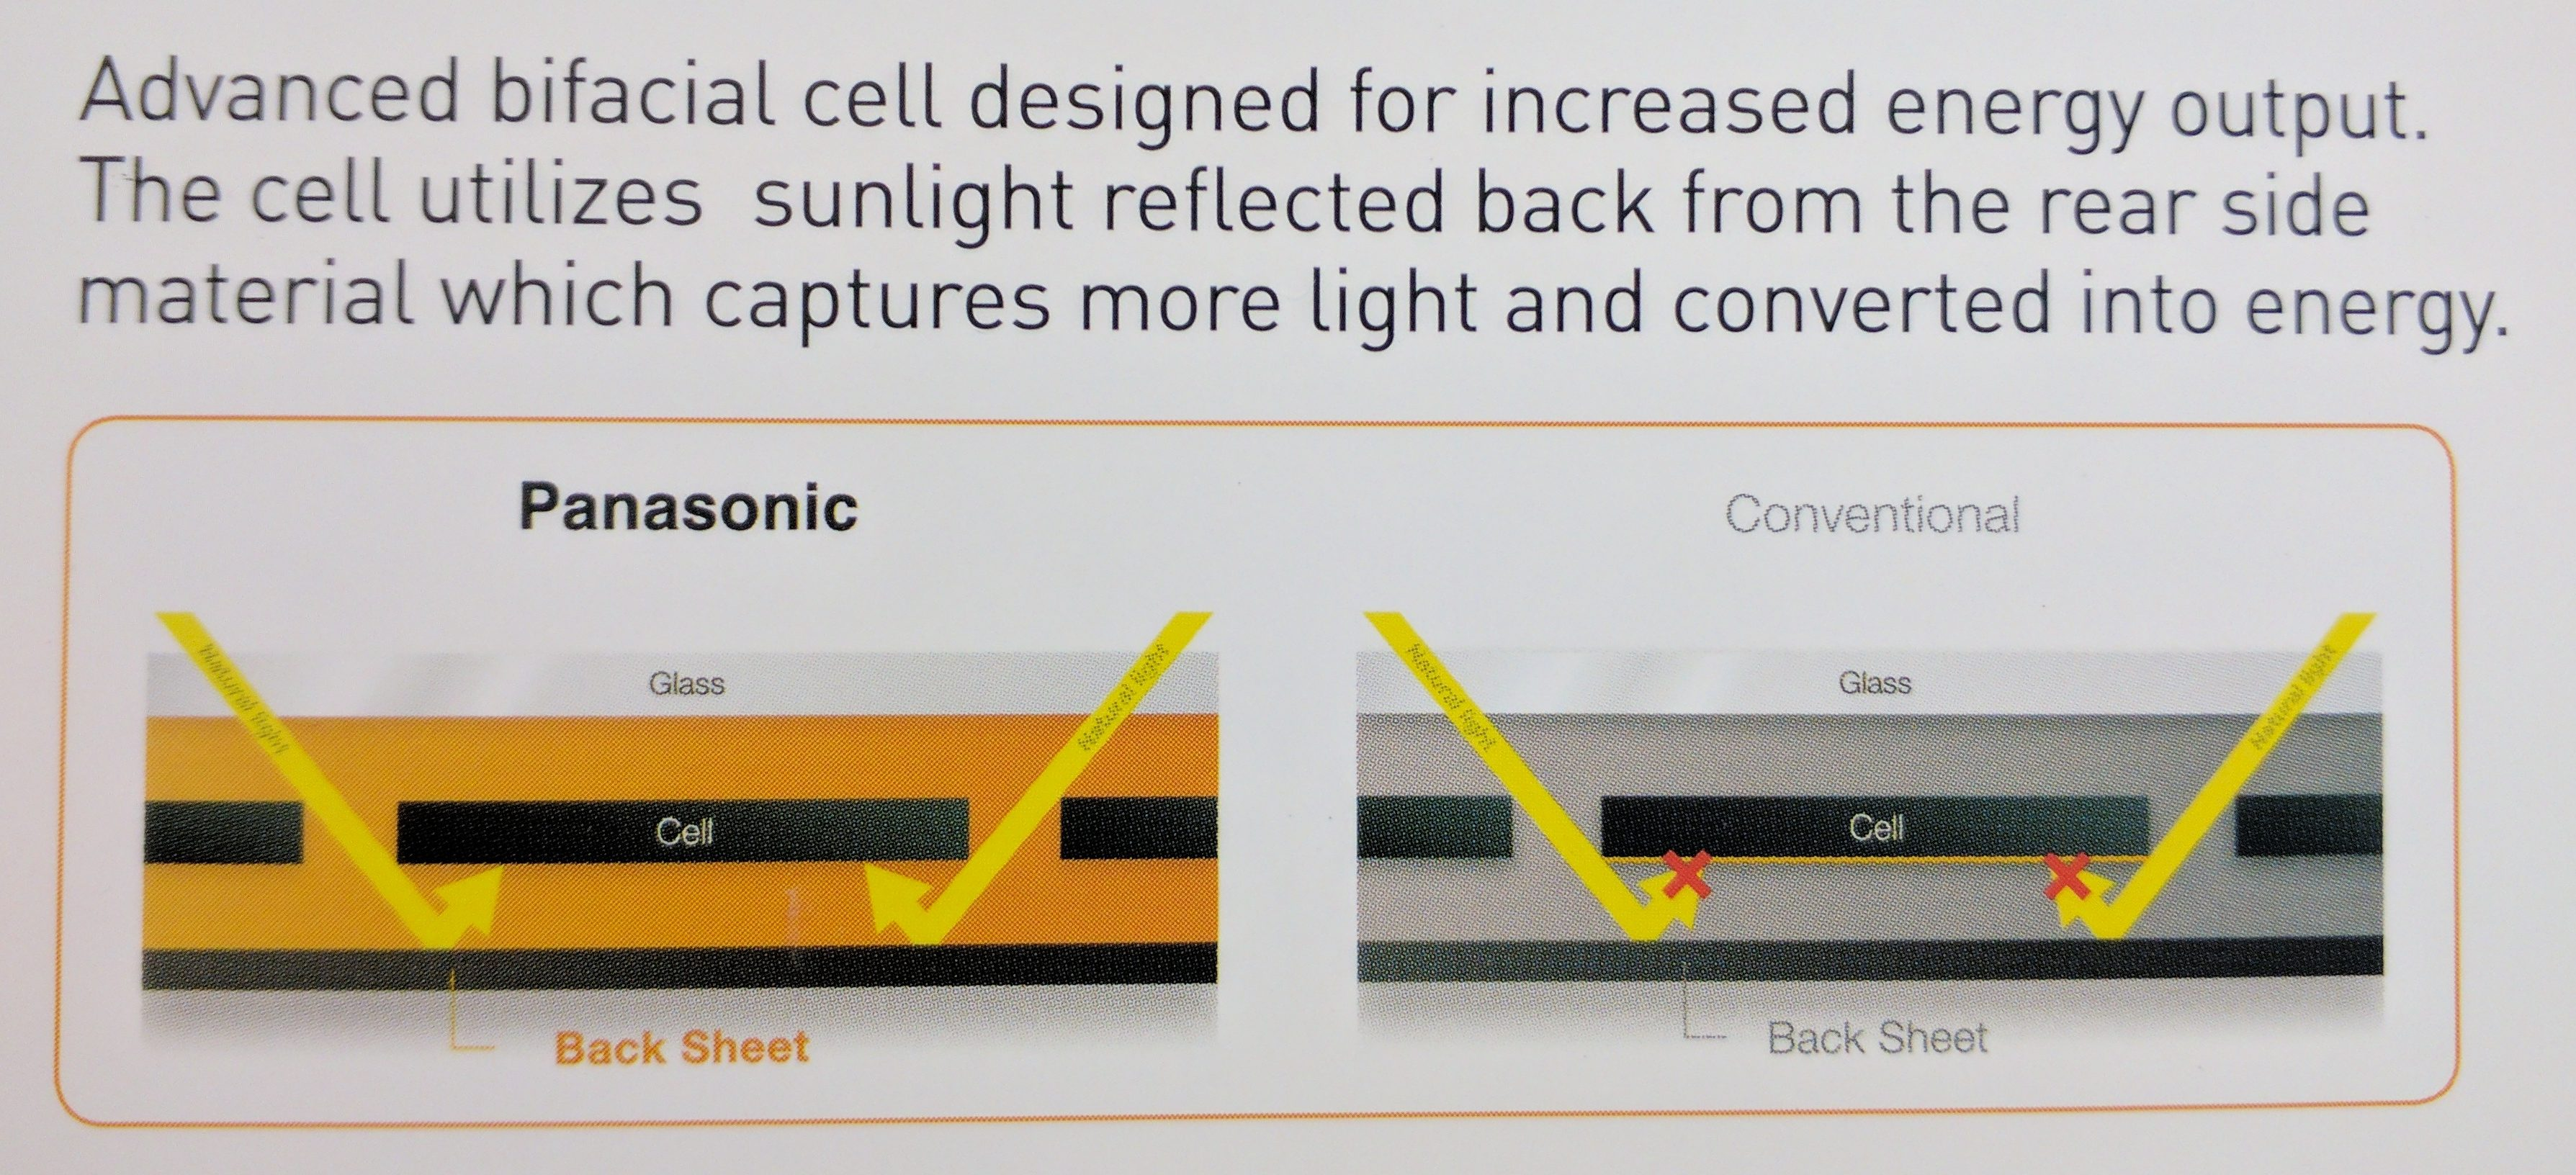 Bifacial Solar Panels From Lg Longi Panasonic And